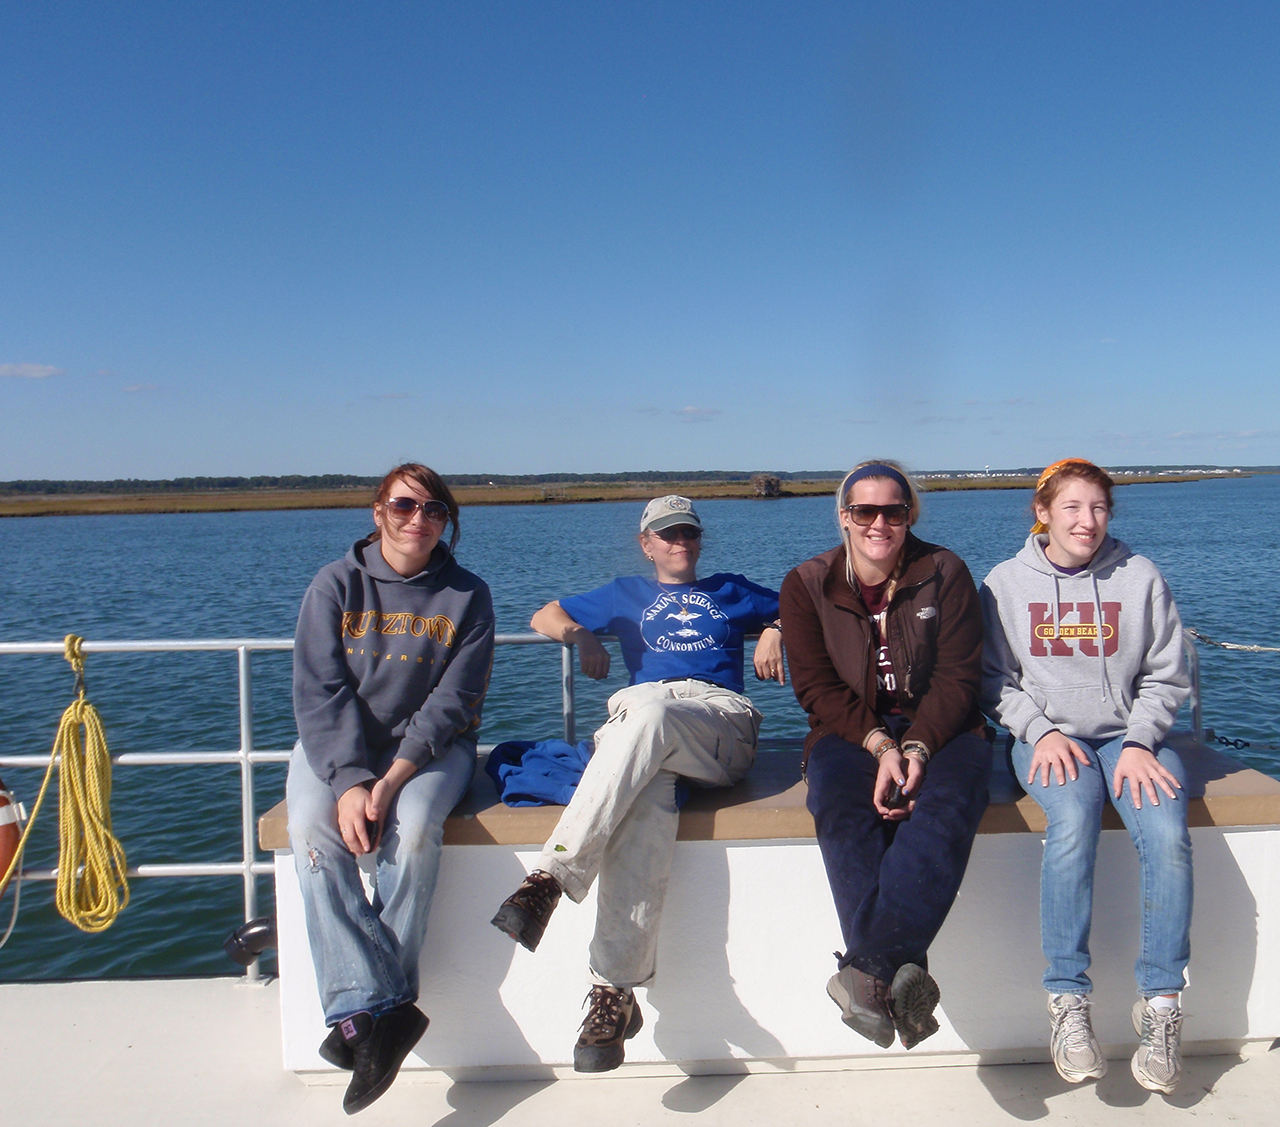 Dr. Ryan and students sitting on a boat with blue skies